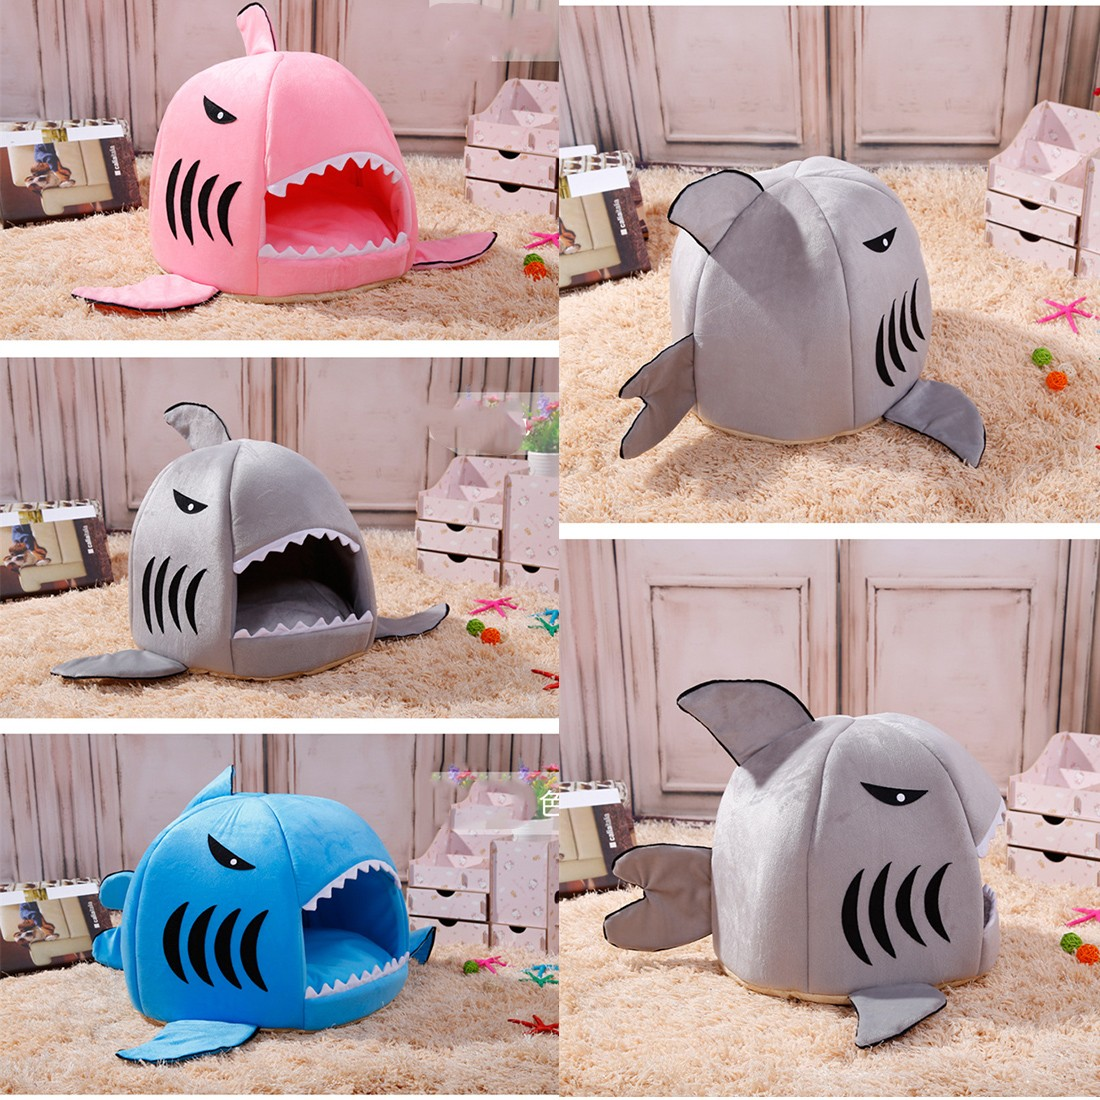 Creative Dog Houses Compare Prices On Unique Pet Beds Online Shopping Buy Low Price